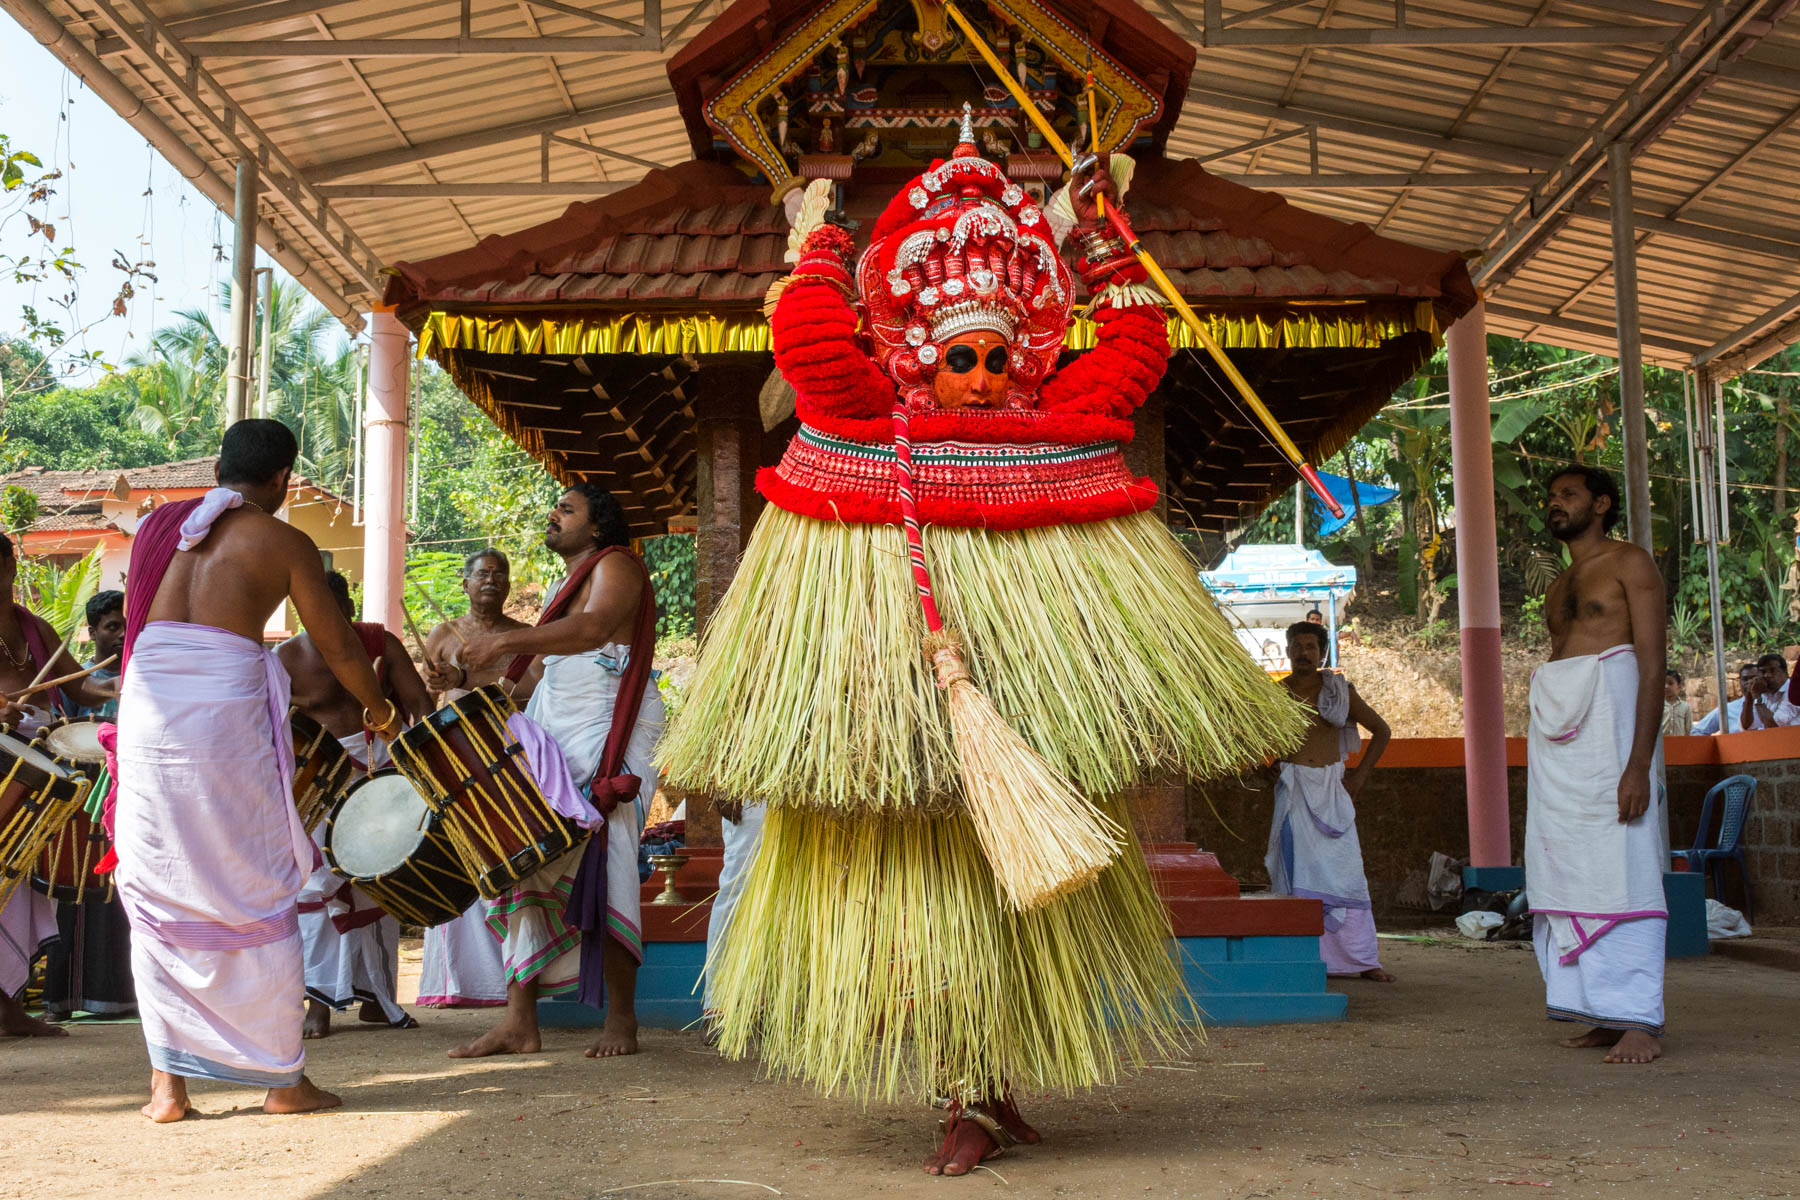 A Theyyam ritual during the day